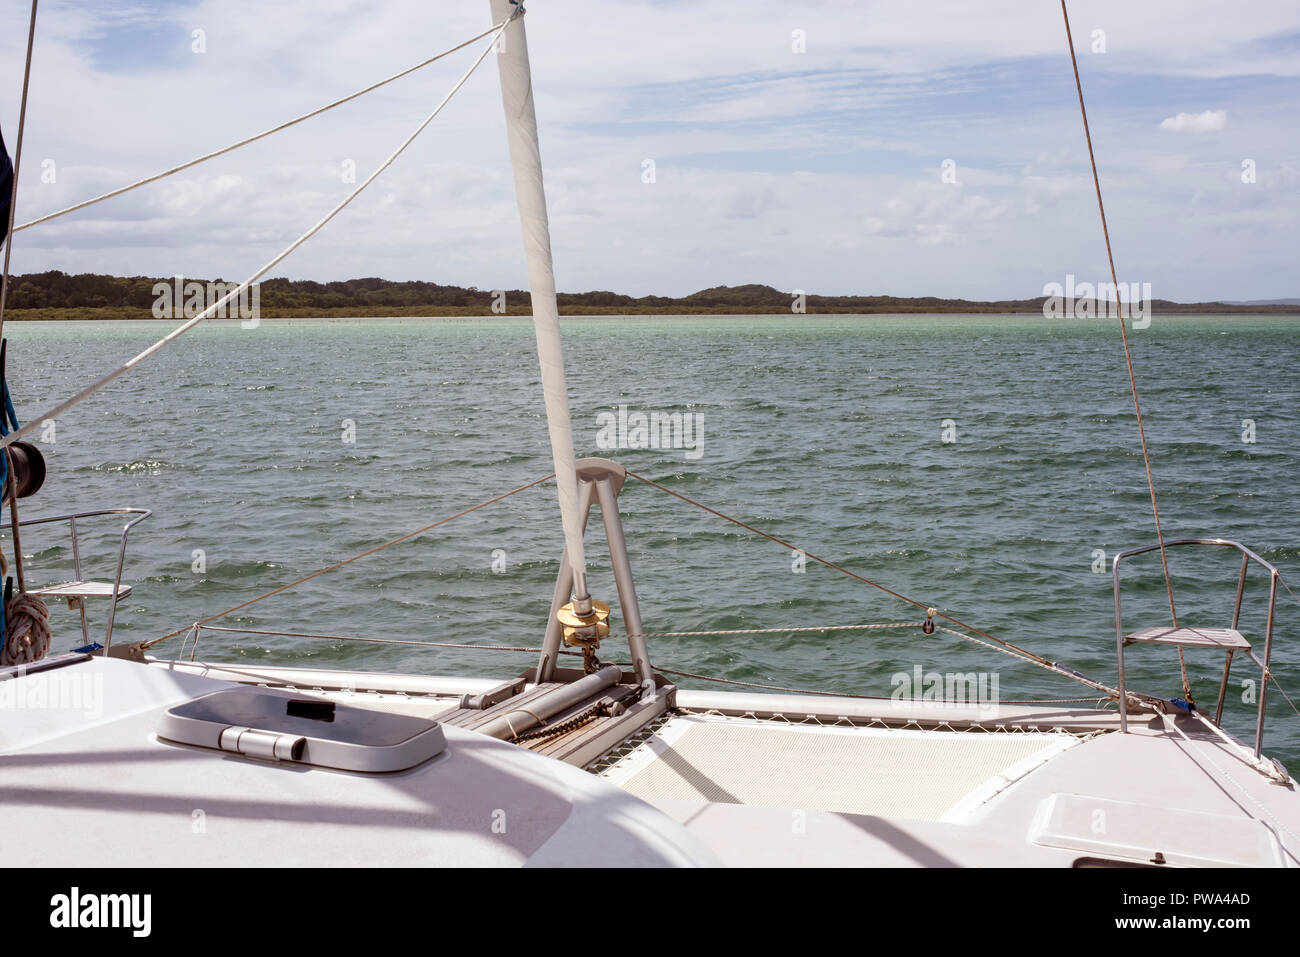 Approaching a tree lined island from the sea with the bow of the yacht in the foreground, suggesting the promised land. - Stock Image